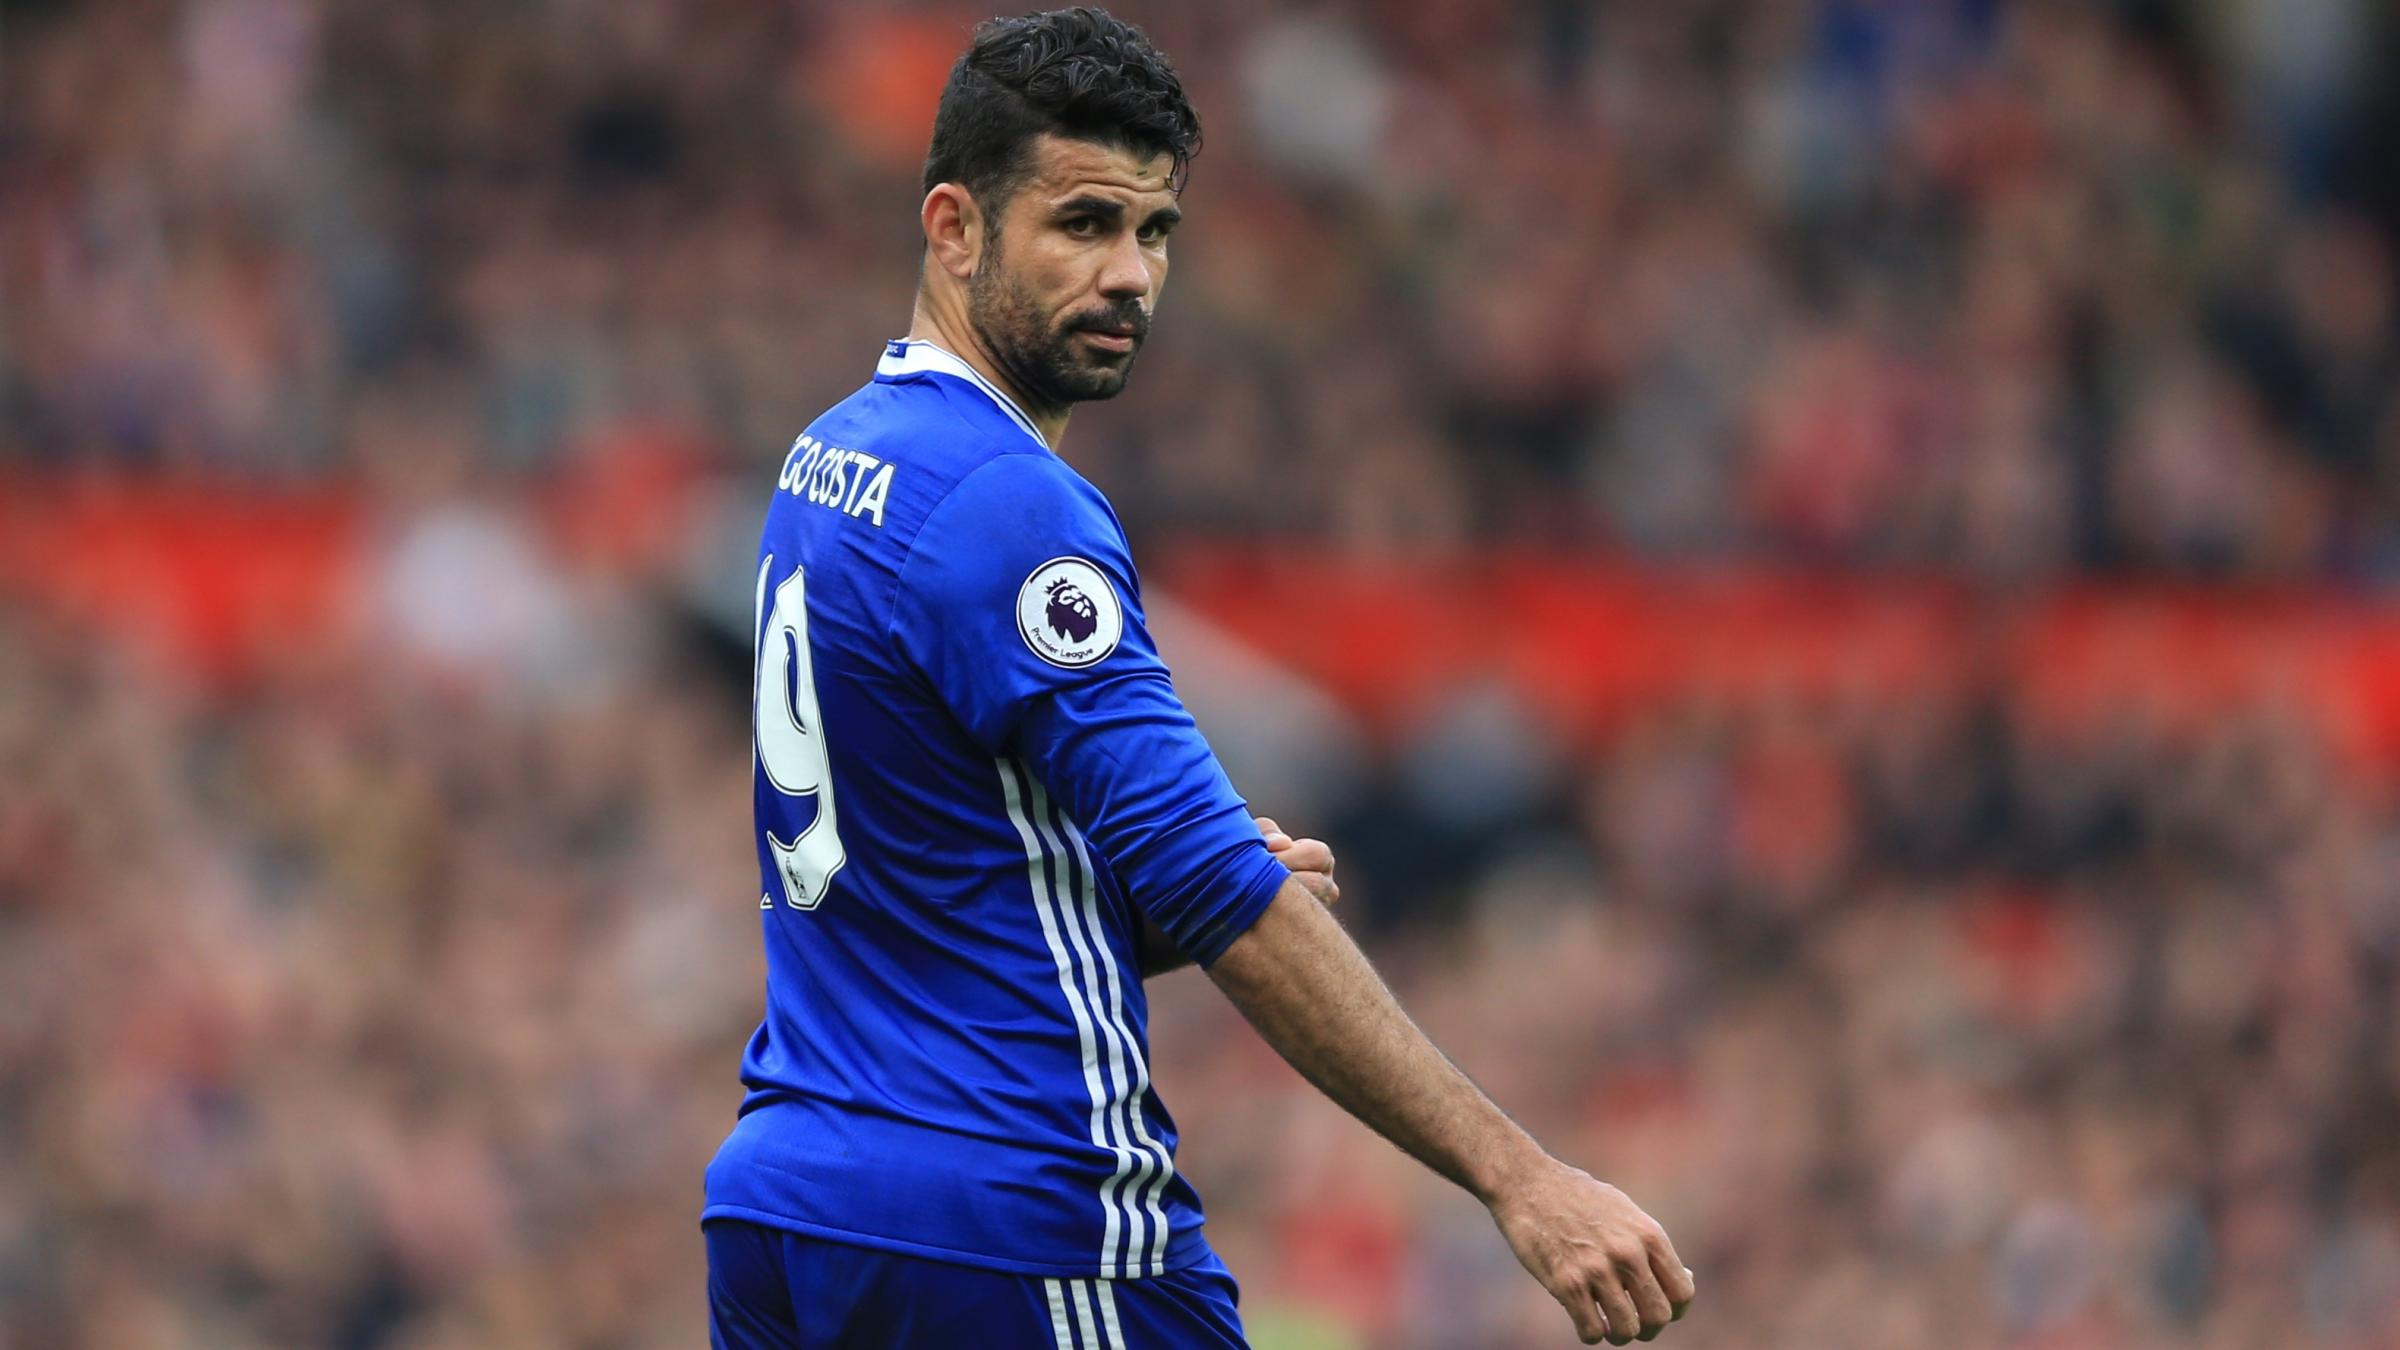 I'm not in Conte's plans, says Costa